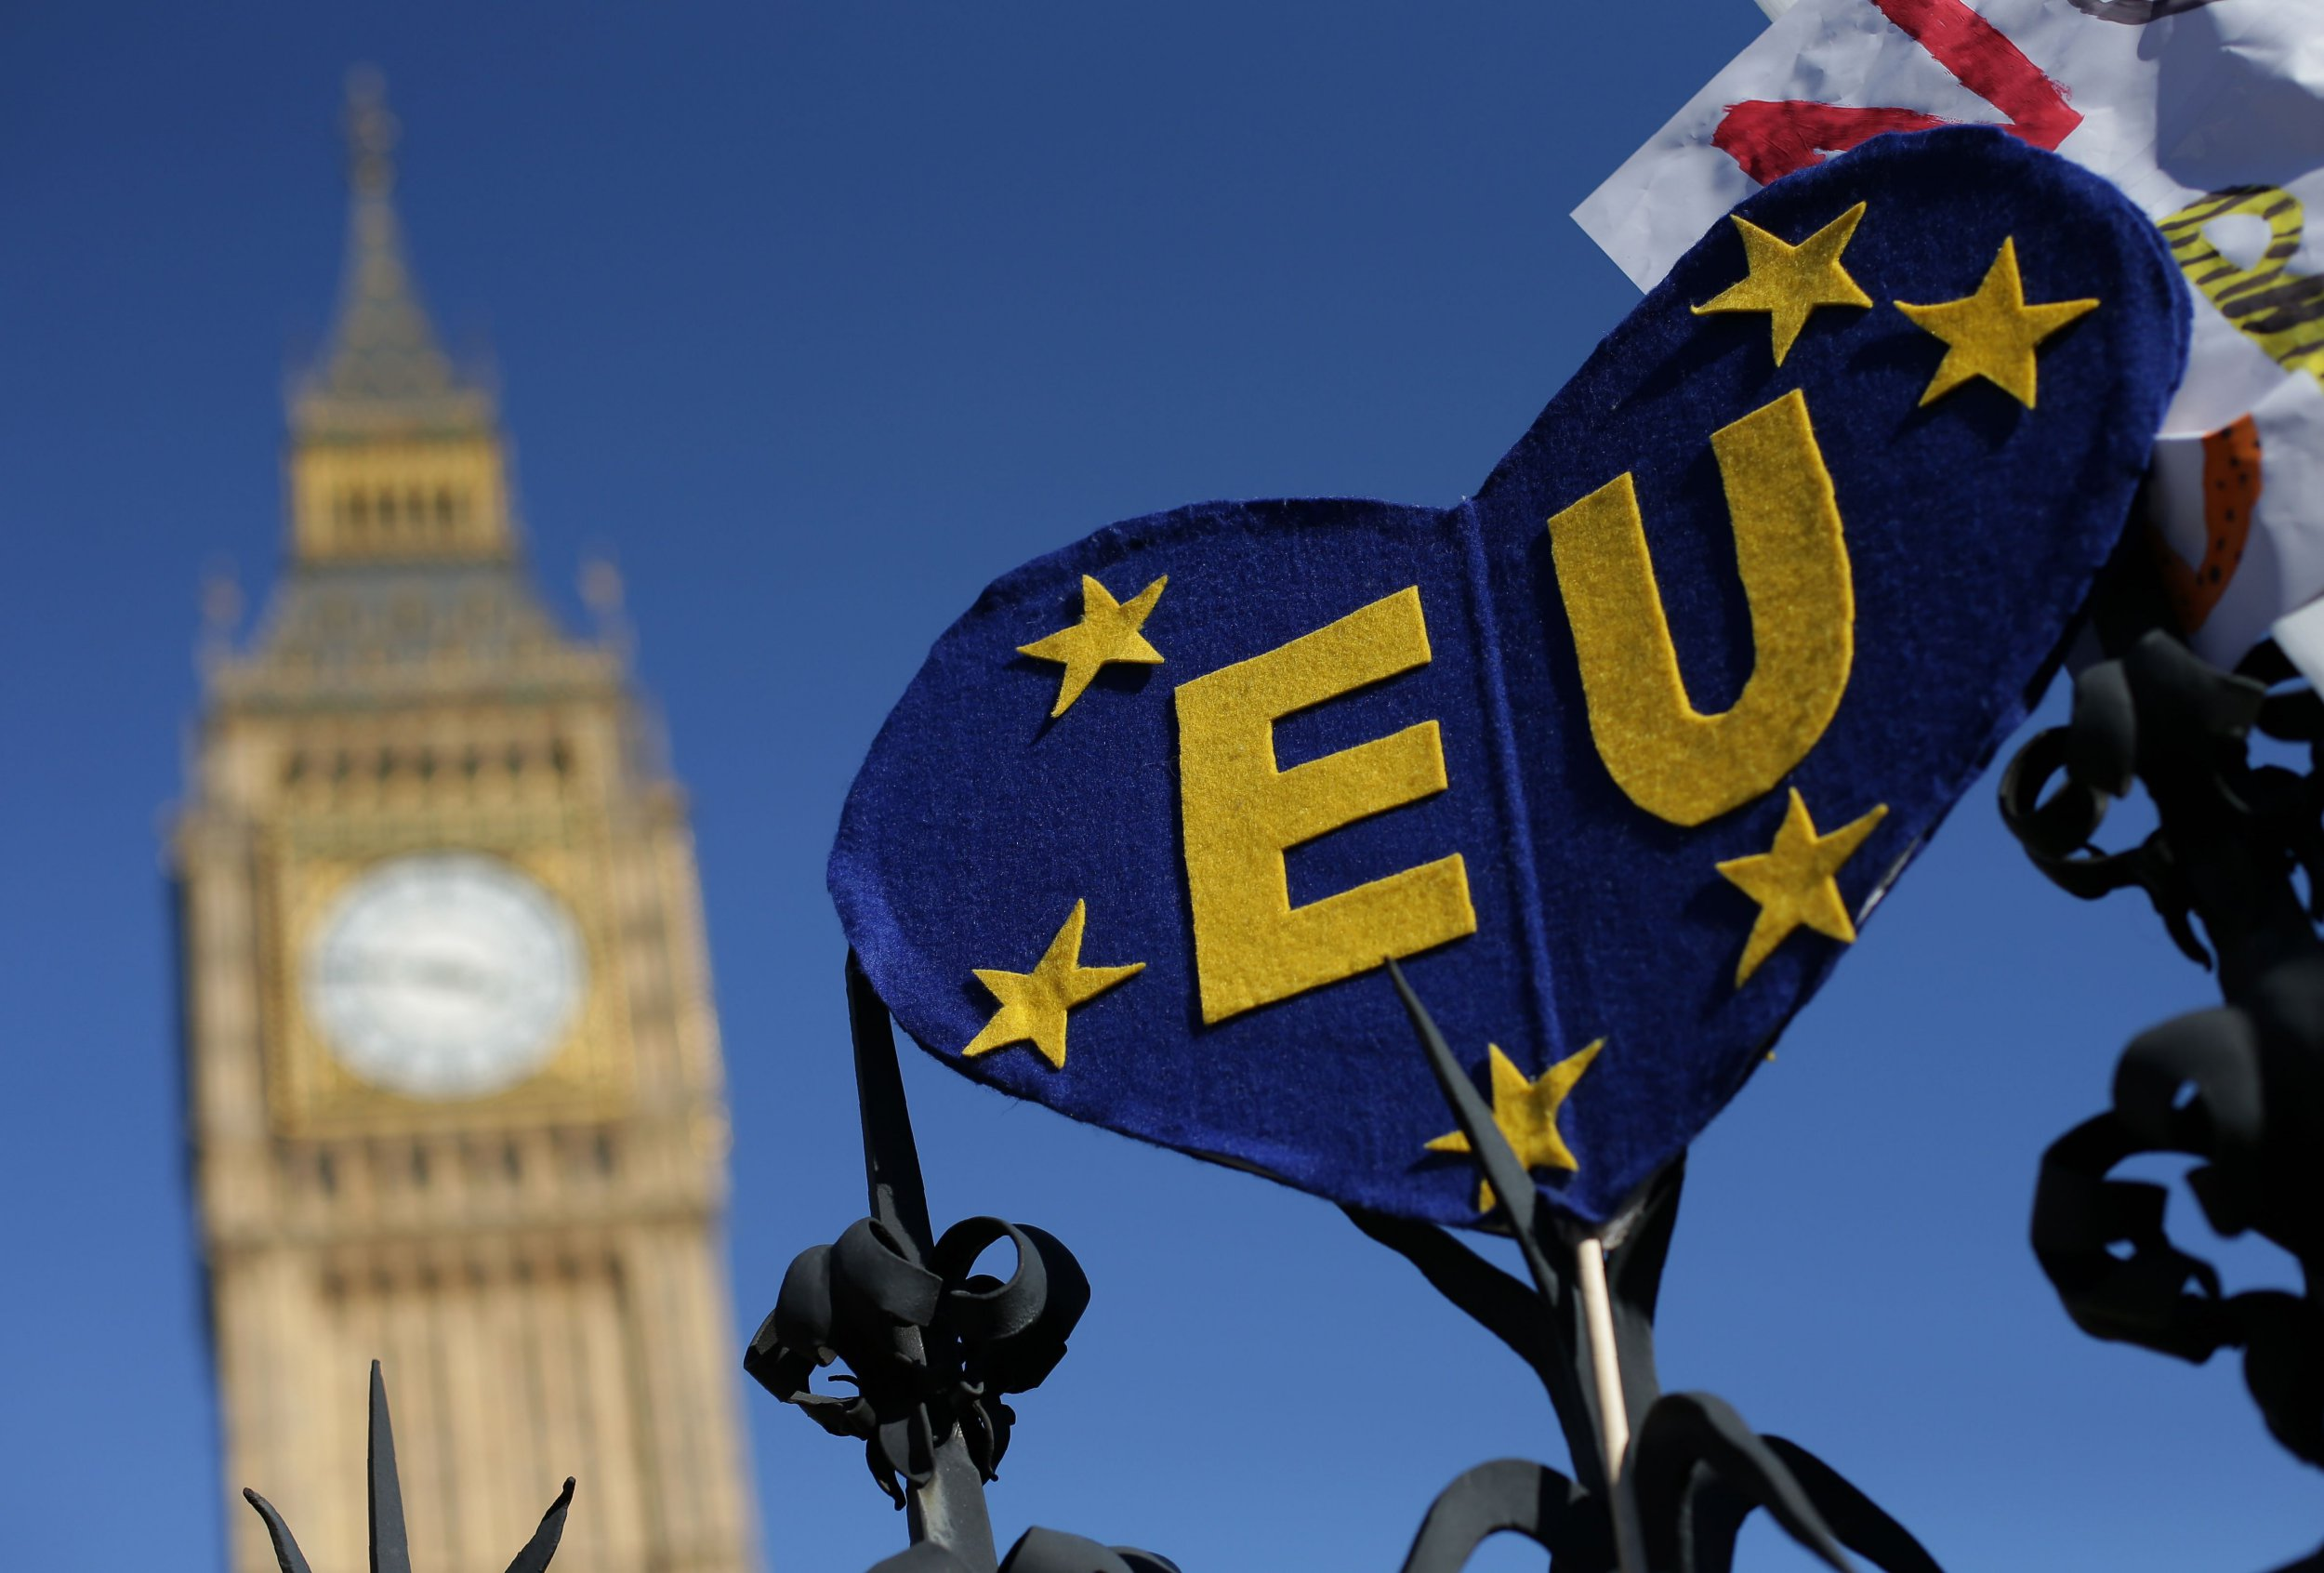 An EU themed placaard is pictured on a railing near the houses of Parliament during a rally follwing an anti Brexit, pro-European Union (EU) march in London on March 25, 2017, ahead of the British government's planned triggering of Article 50 next week. - Tens of thousands of pro-EU protesters took to London's streets Saturday, in defiance of the terror threat, to mark the bloc's 60th anniversary just days before Brexit begins. (Photo by Daniel LEAL-OLIVAS / AFP) (Photo credit should read DANIEL LEAL-OLIVAS/AFP/Getty Images)